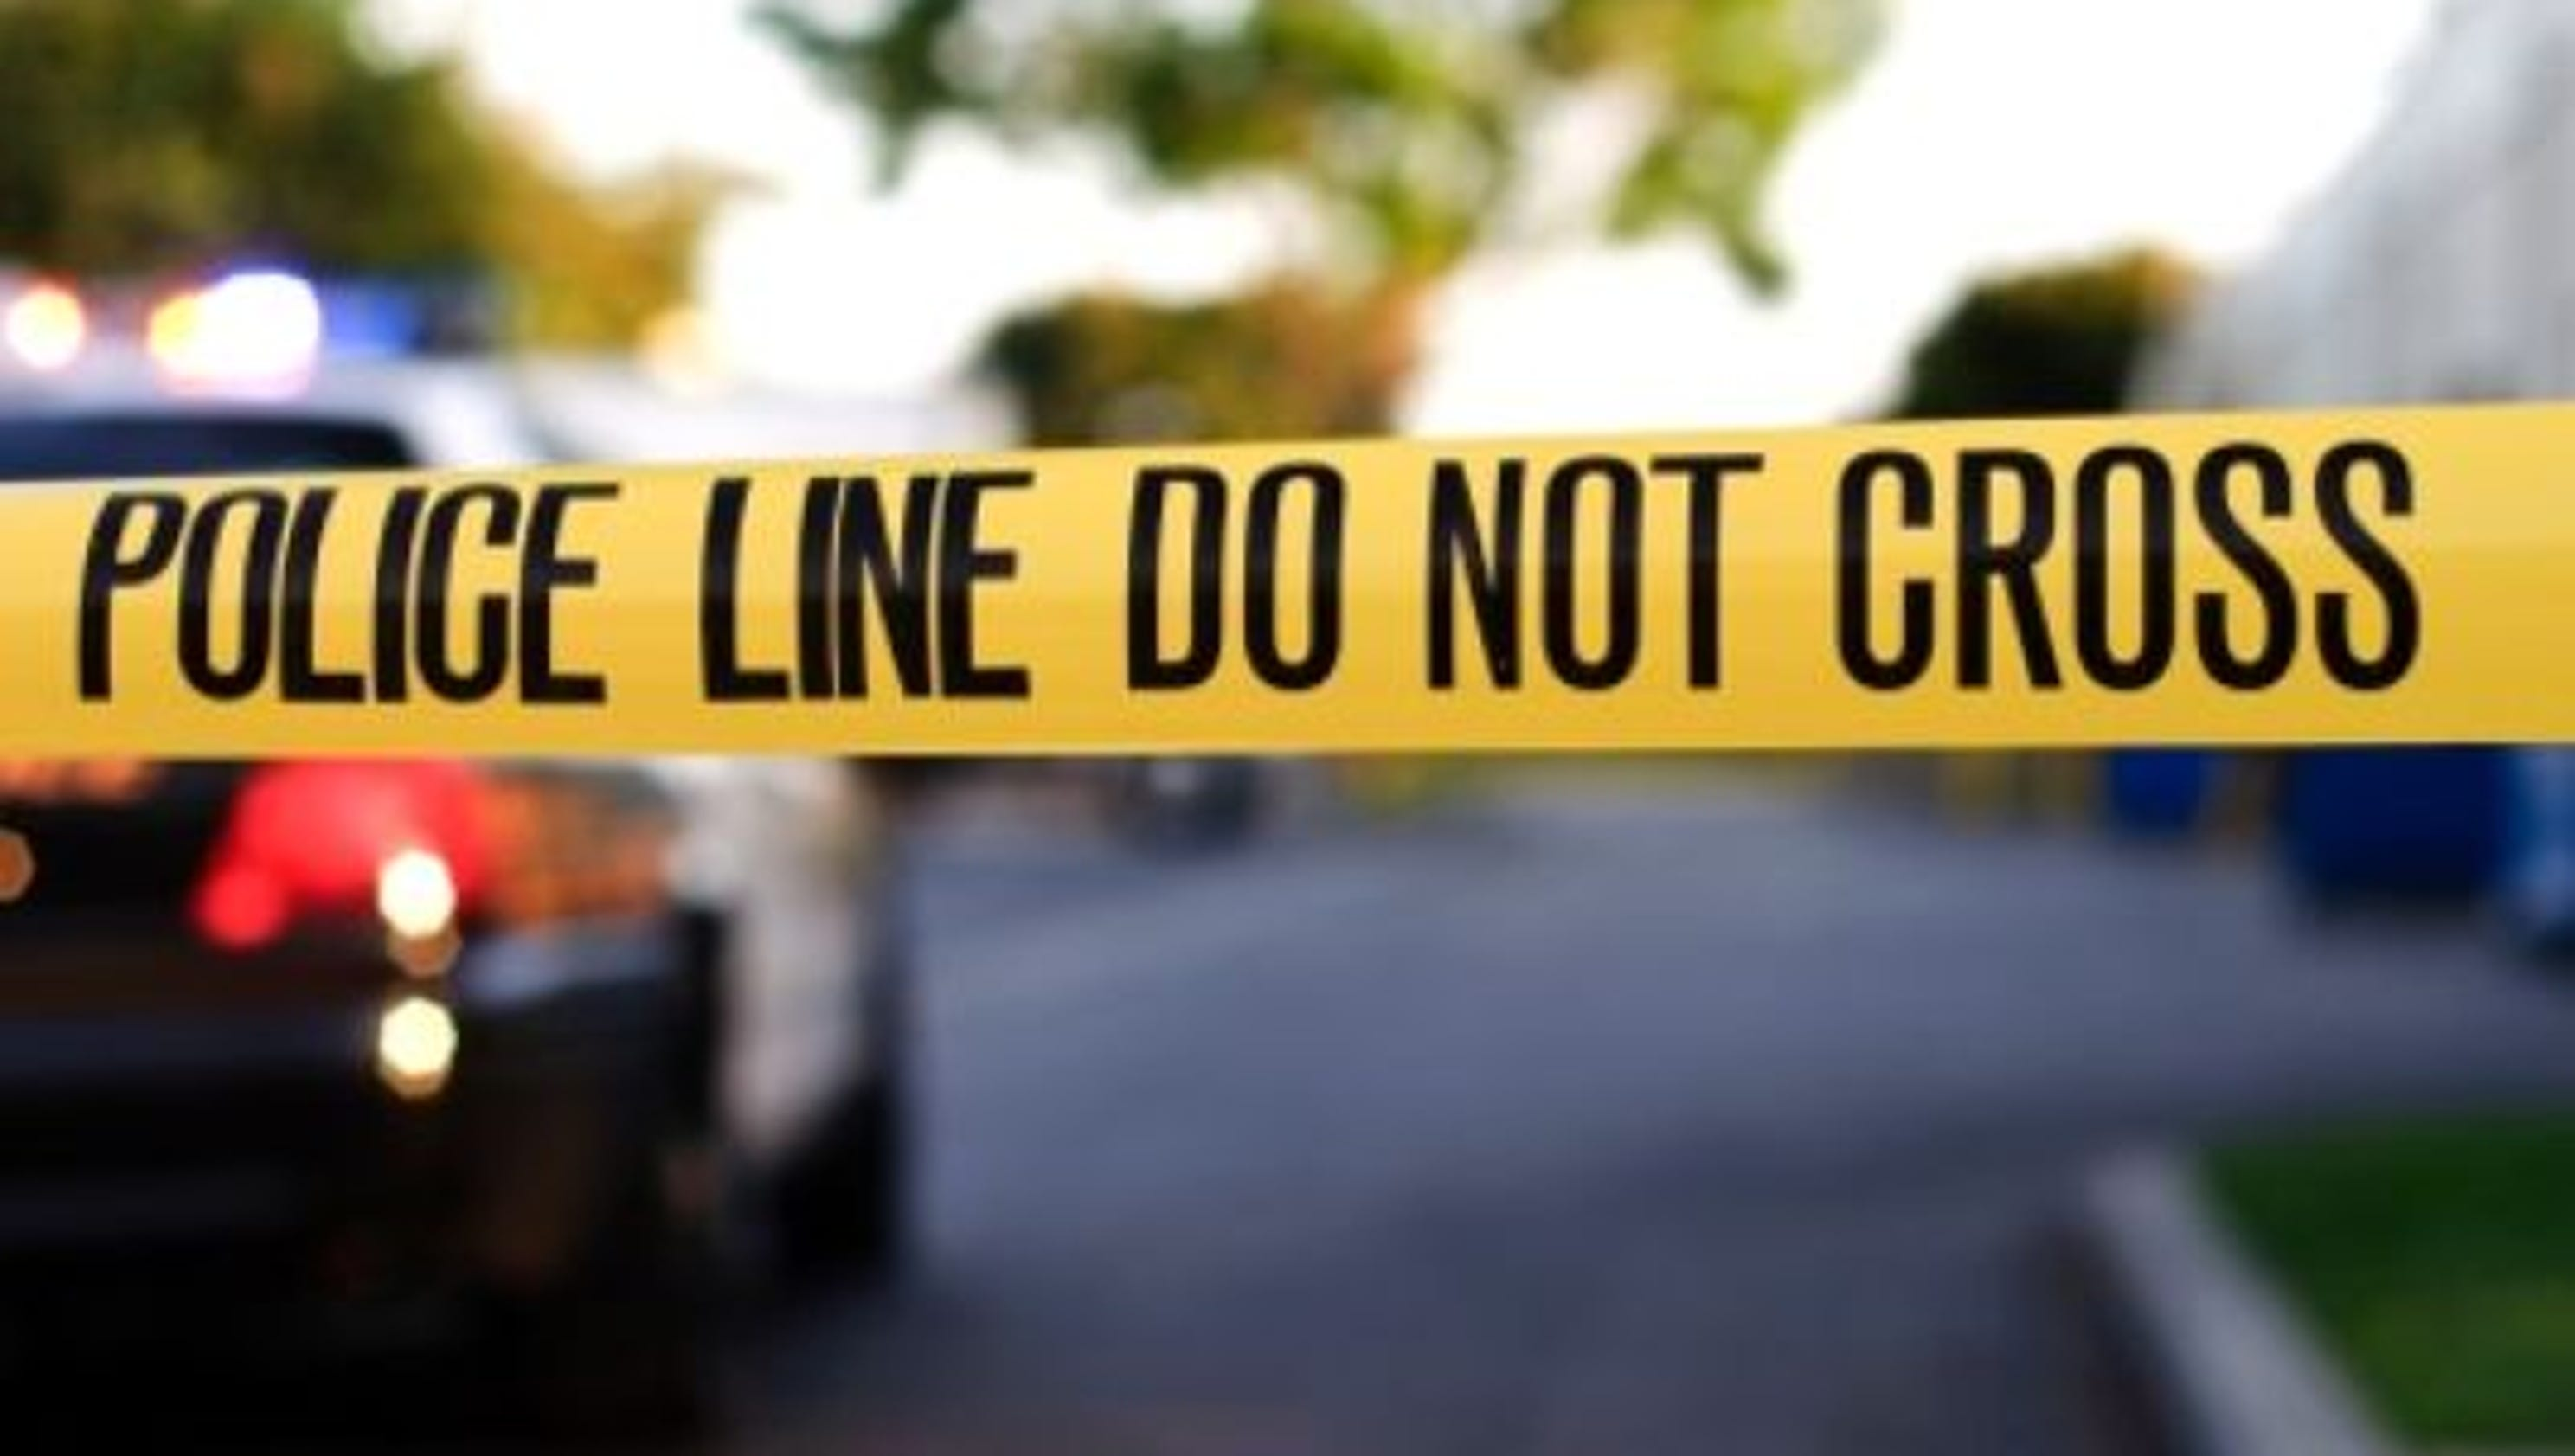 Police ID homicide victim; shooting ruled justifiable